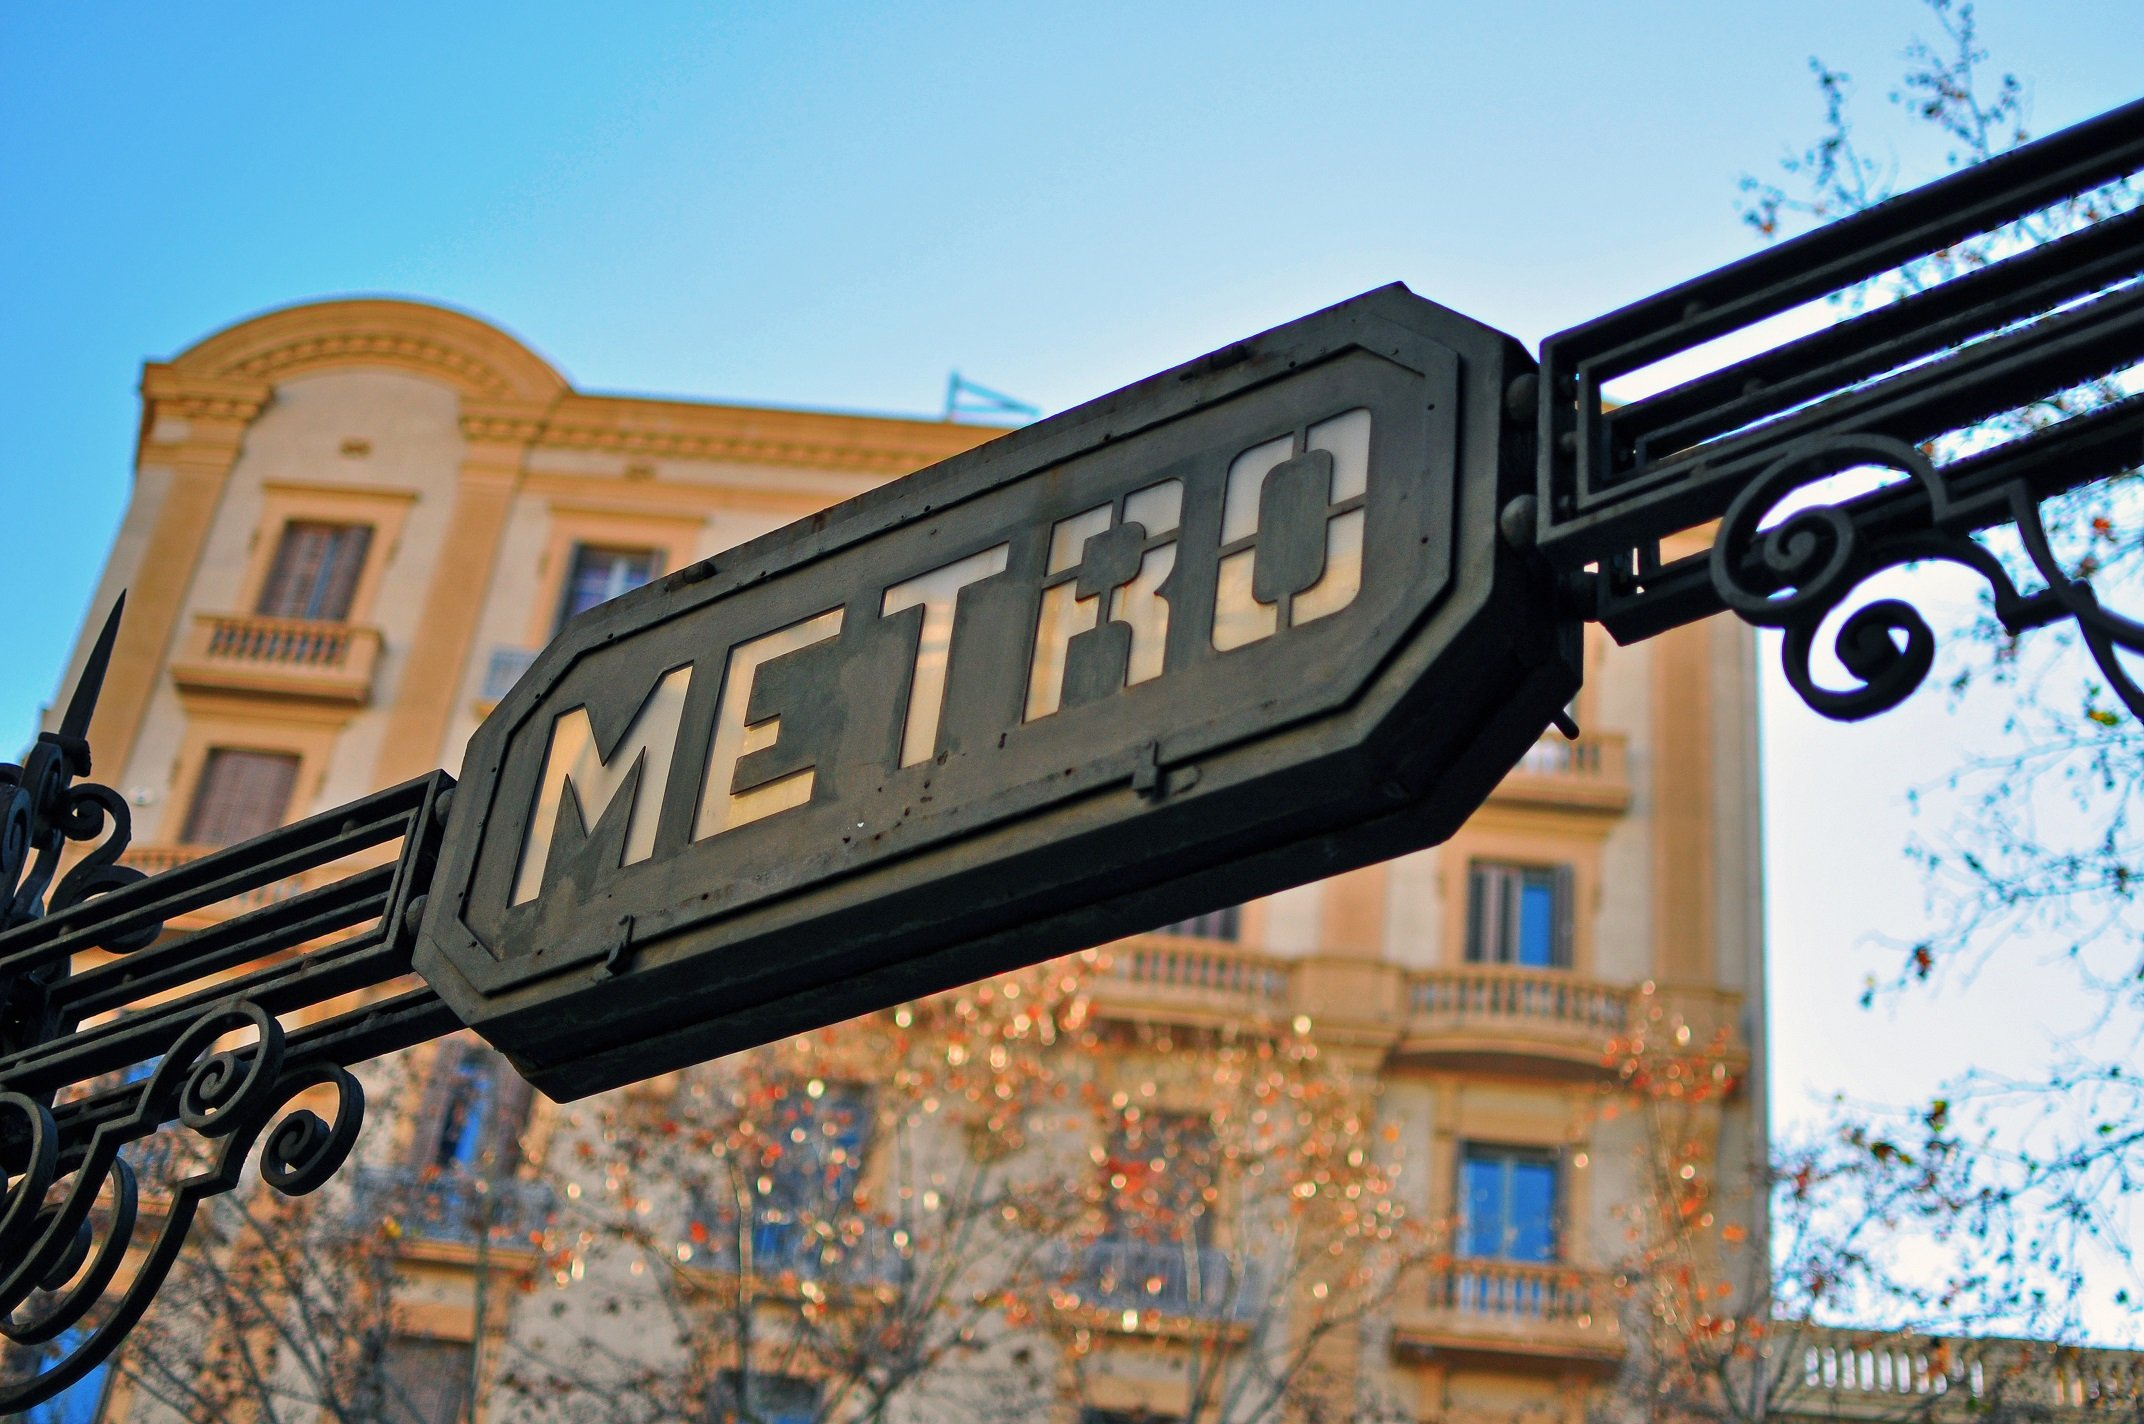 Getting to Barcelona Airport by metro